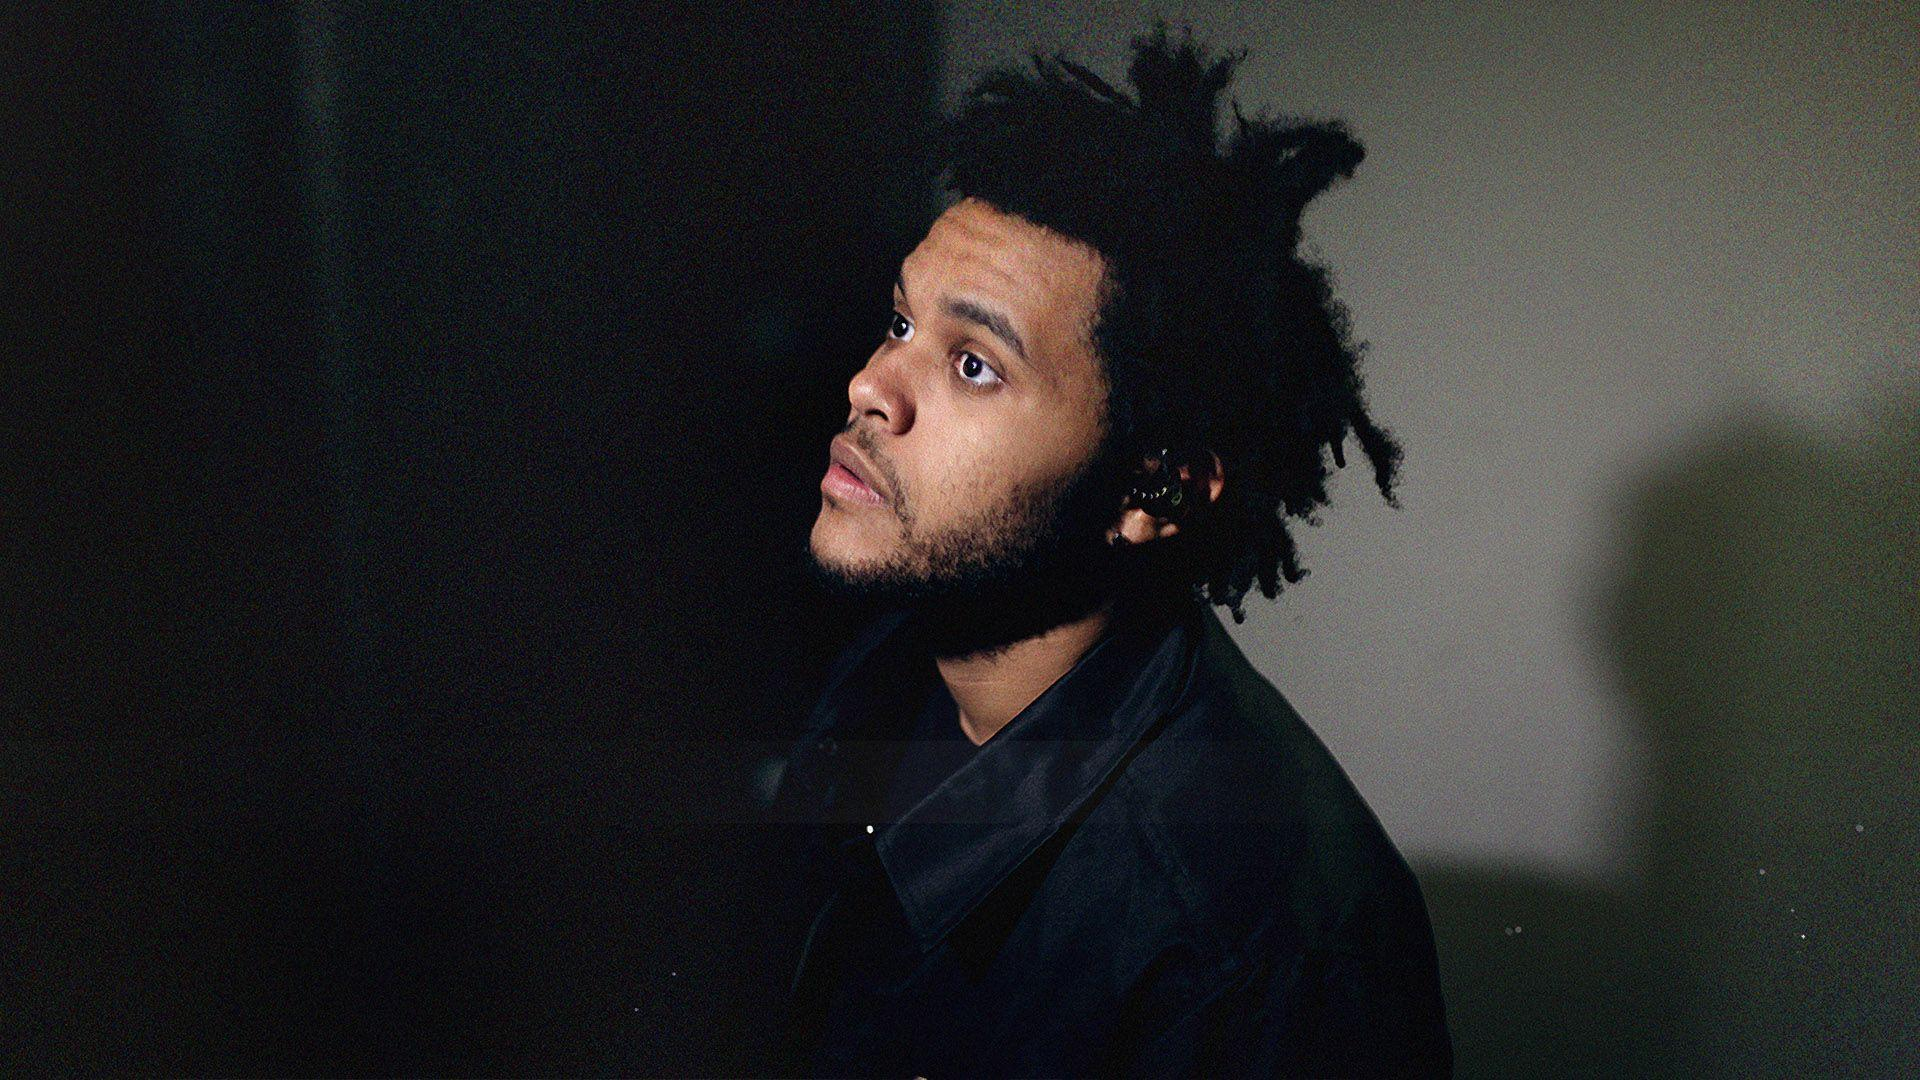 The Weeknd HD Wallpaper, Live The Weeknd HD Images (42), PC ...